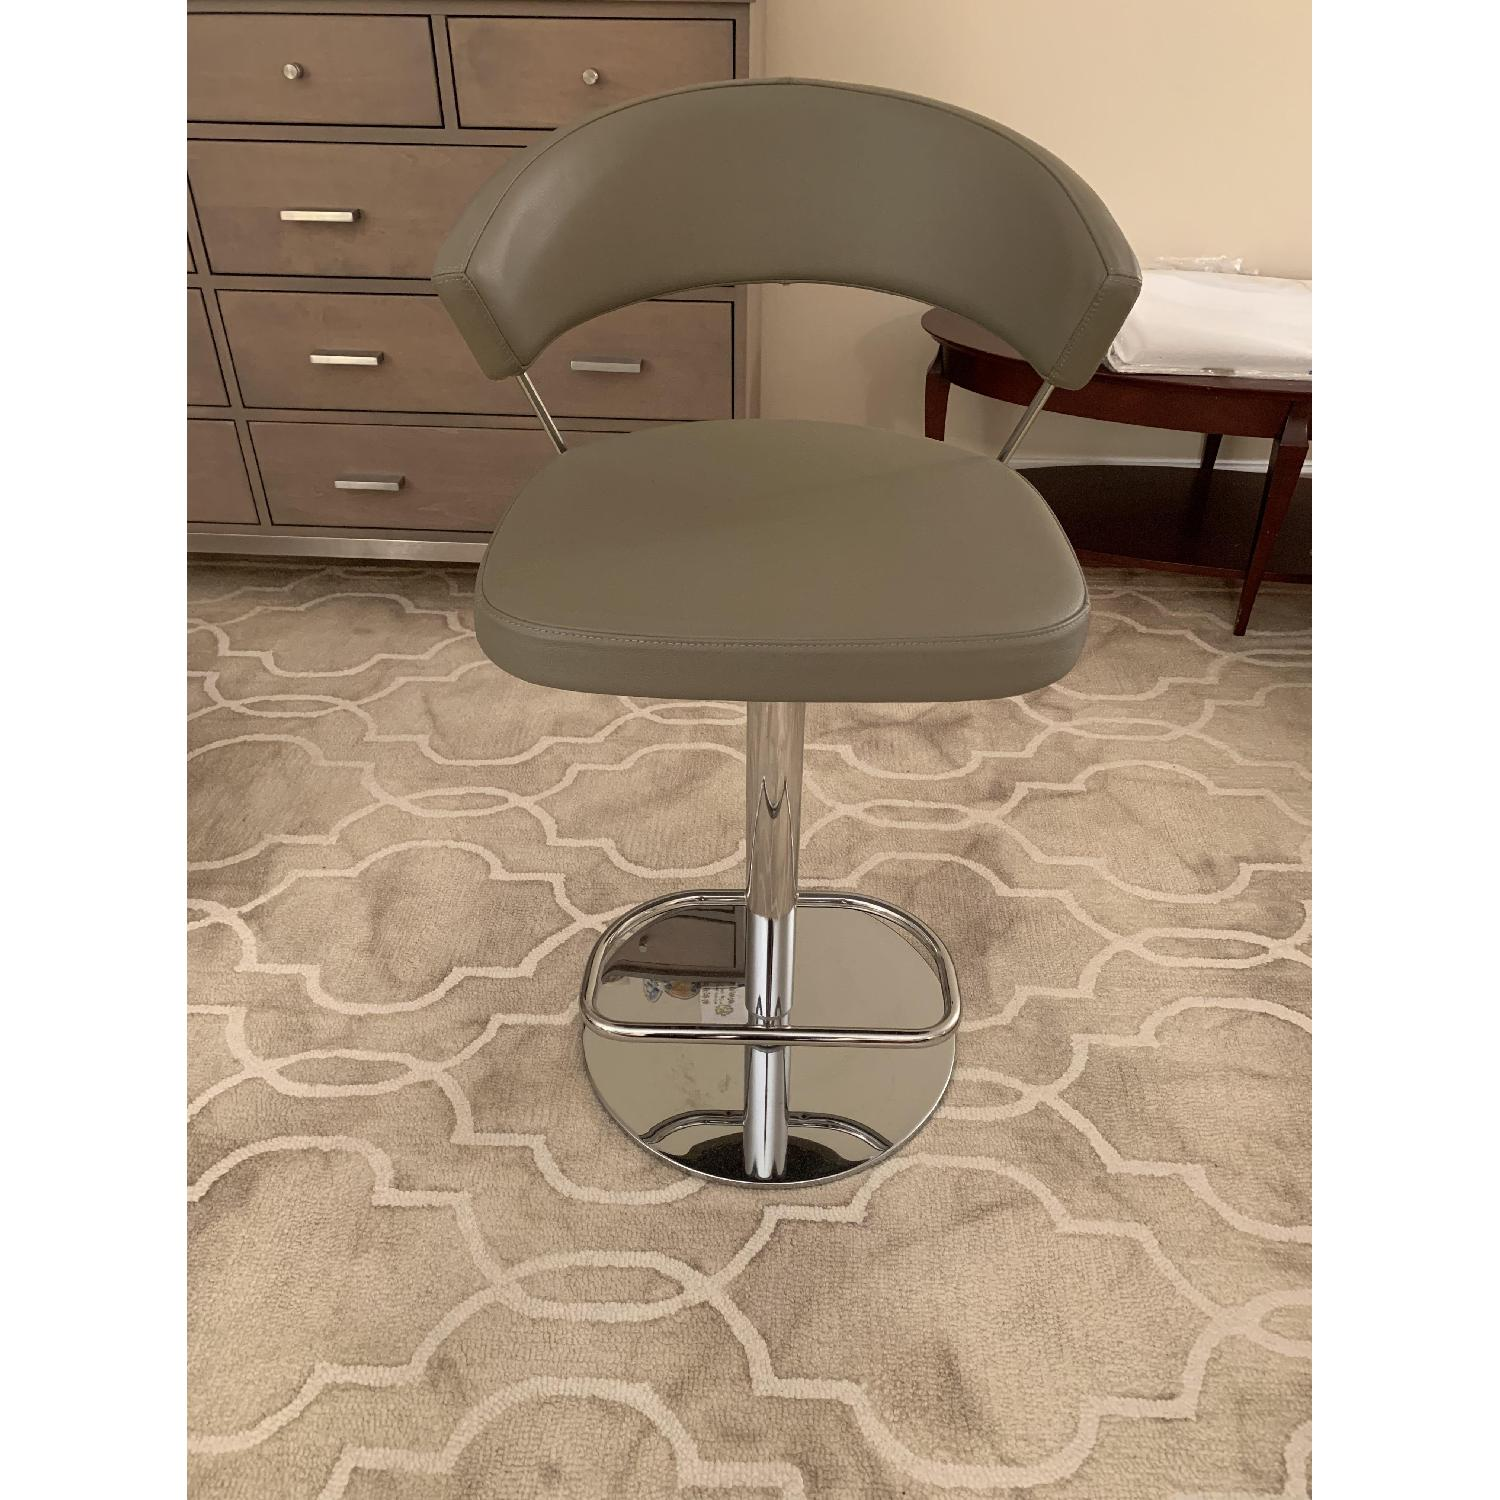 Calligaris Grey Leather Adjustable Stools w/ Backrest - image-1